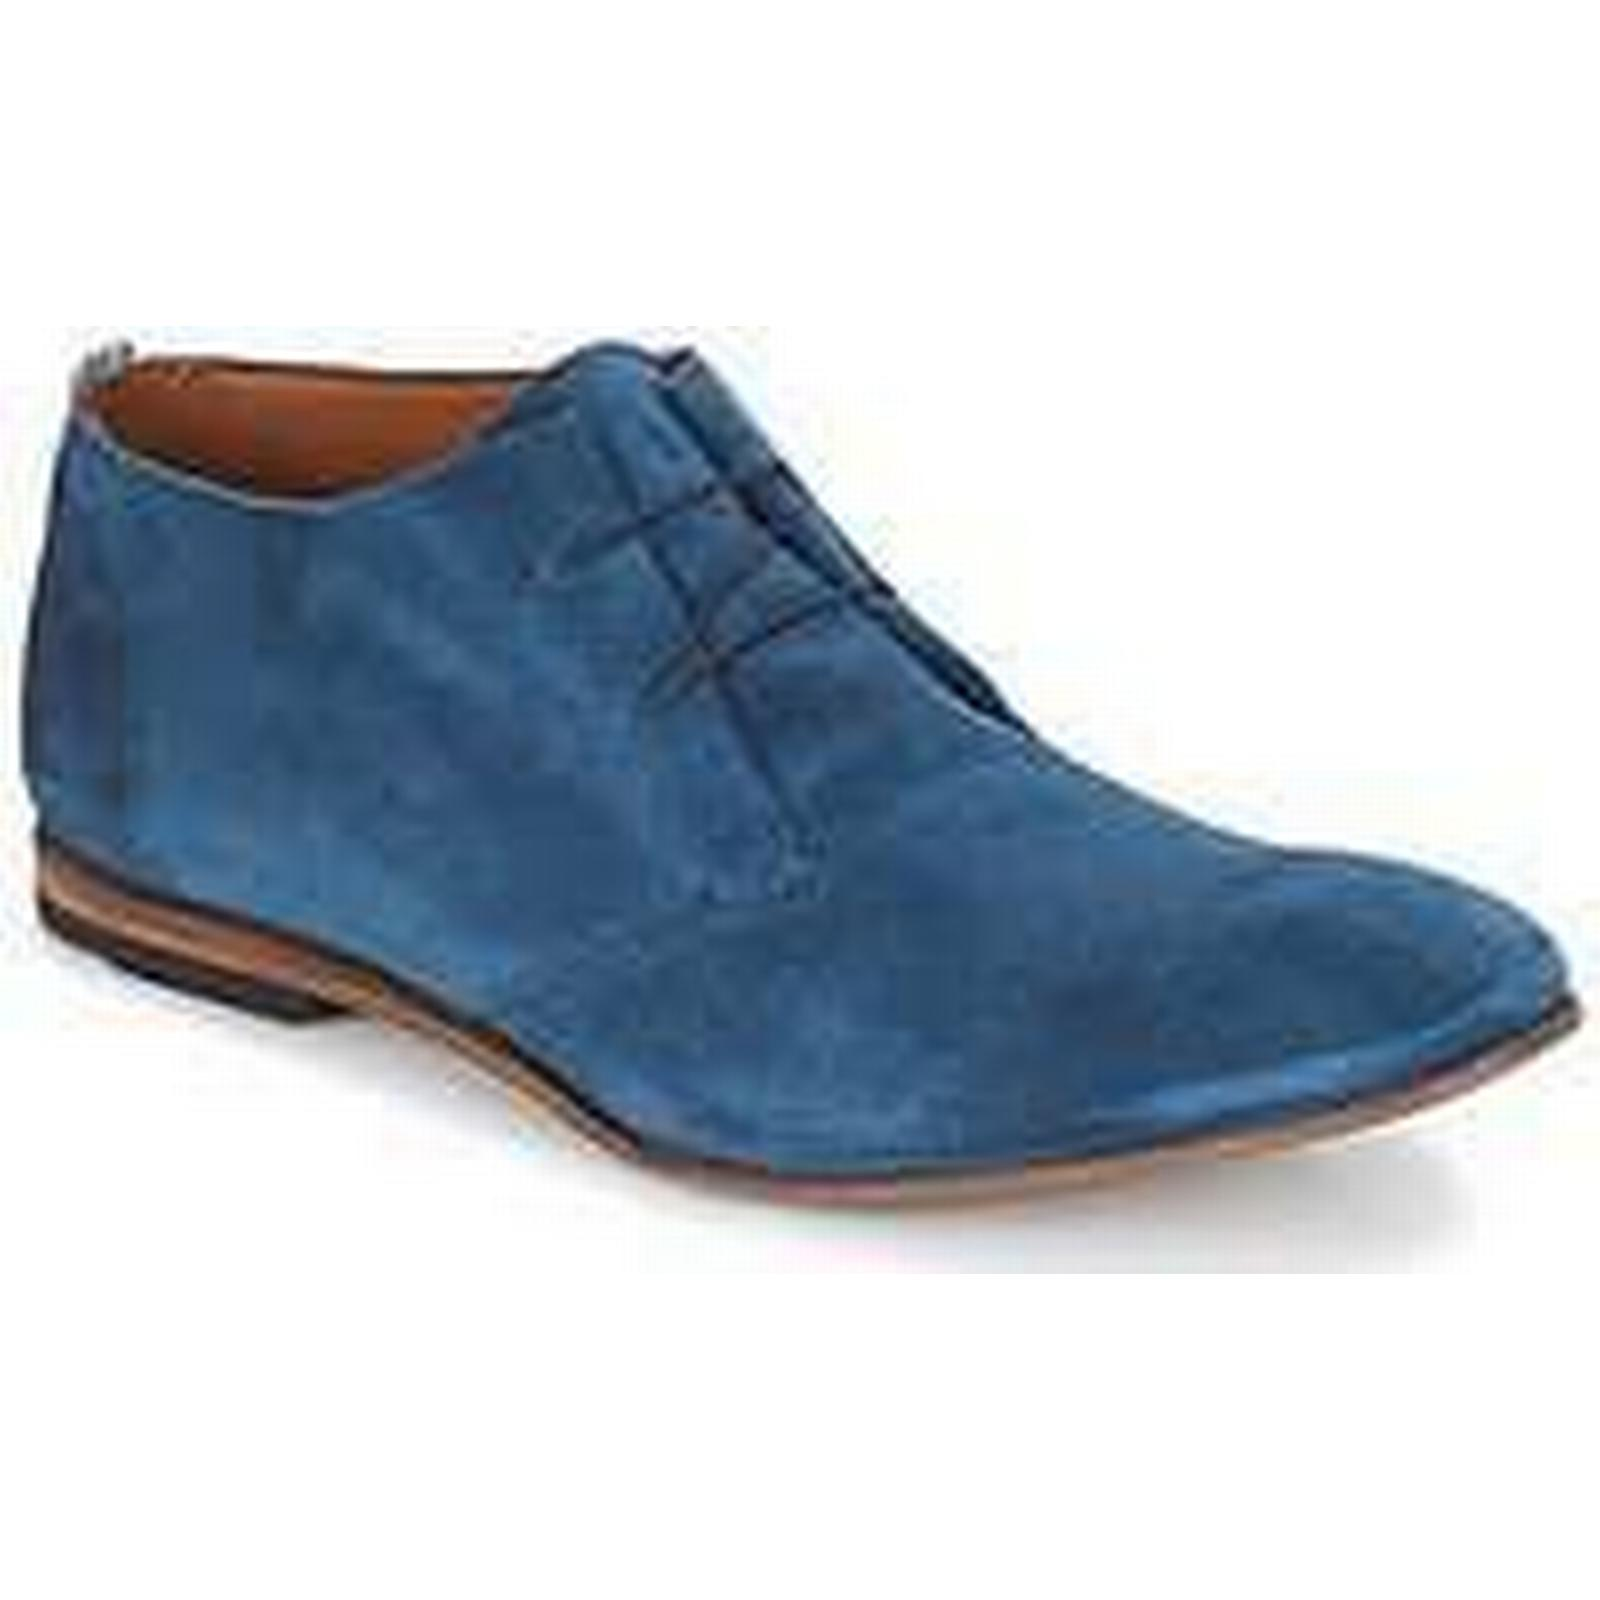 Spartoo.co.uk Lloyd in SARONA men's Casual Shoes in Lloyd Blue b0d456